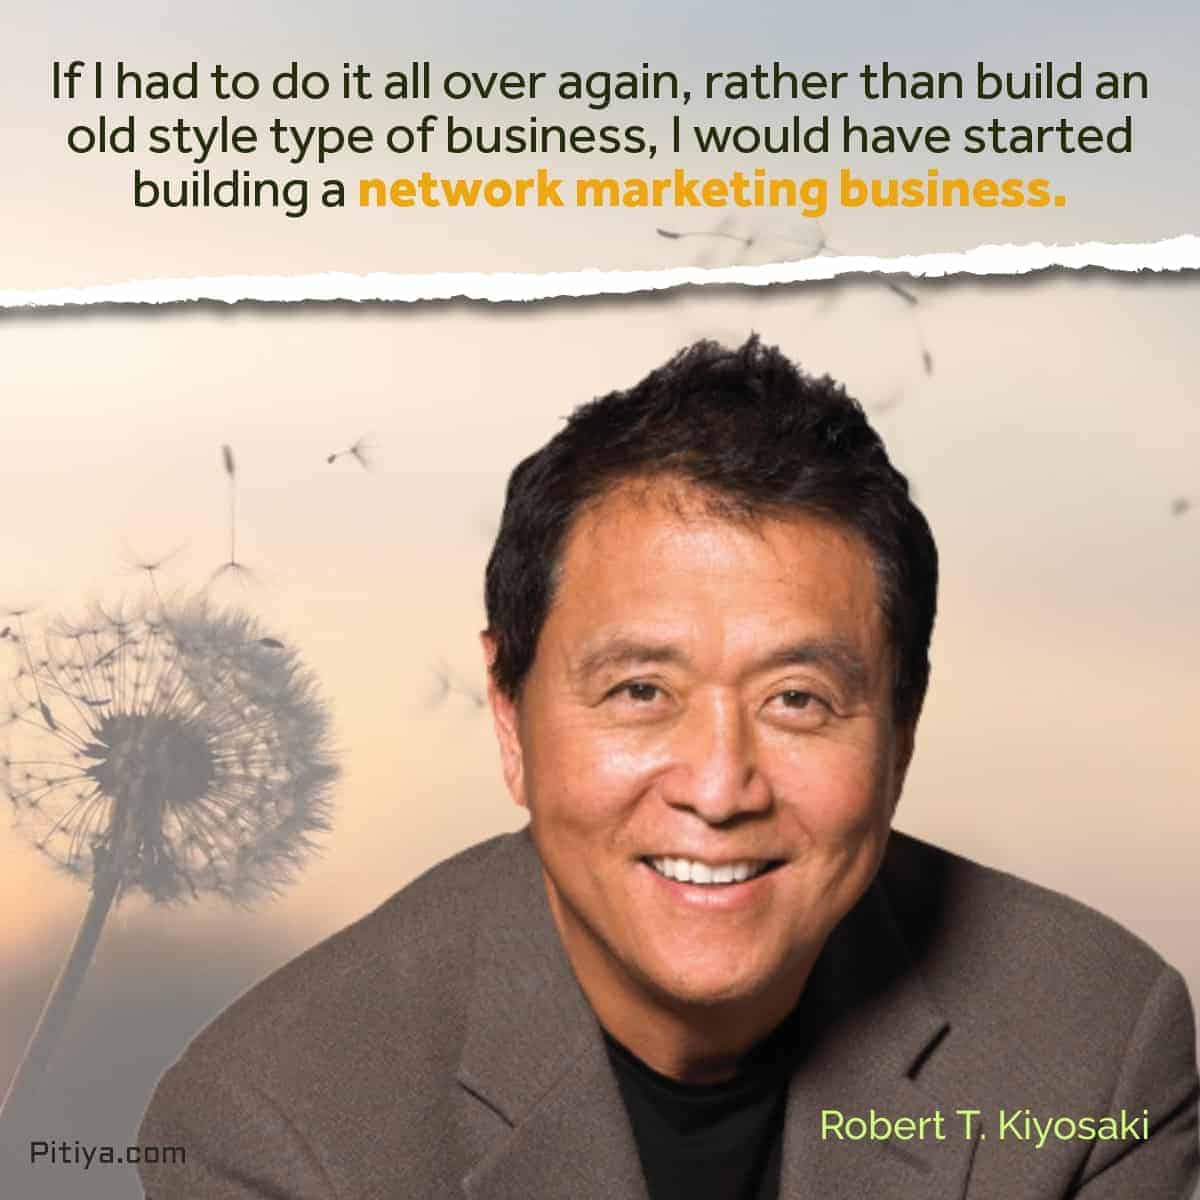 Robert-Kiyosaki-network-marketing-quote